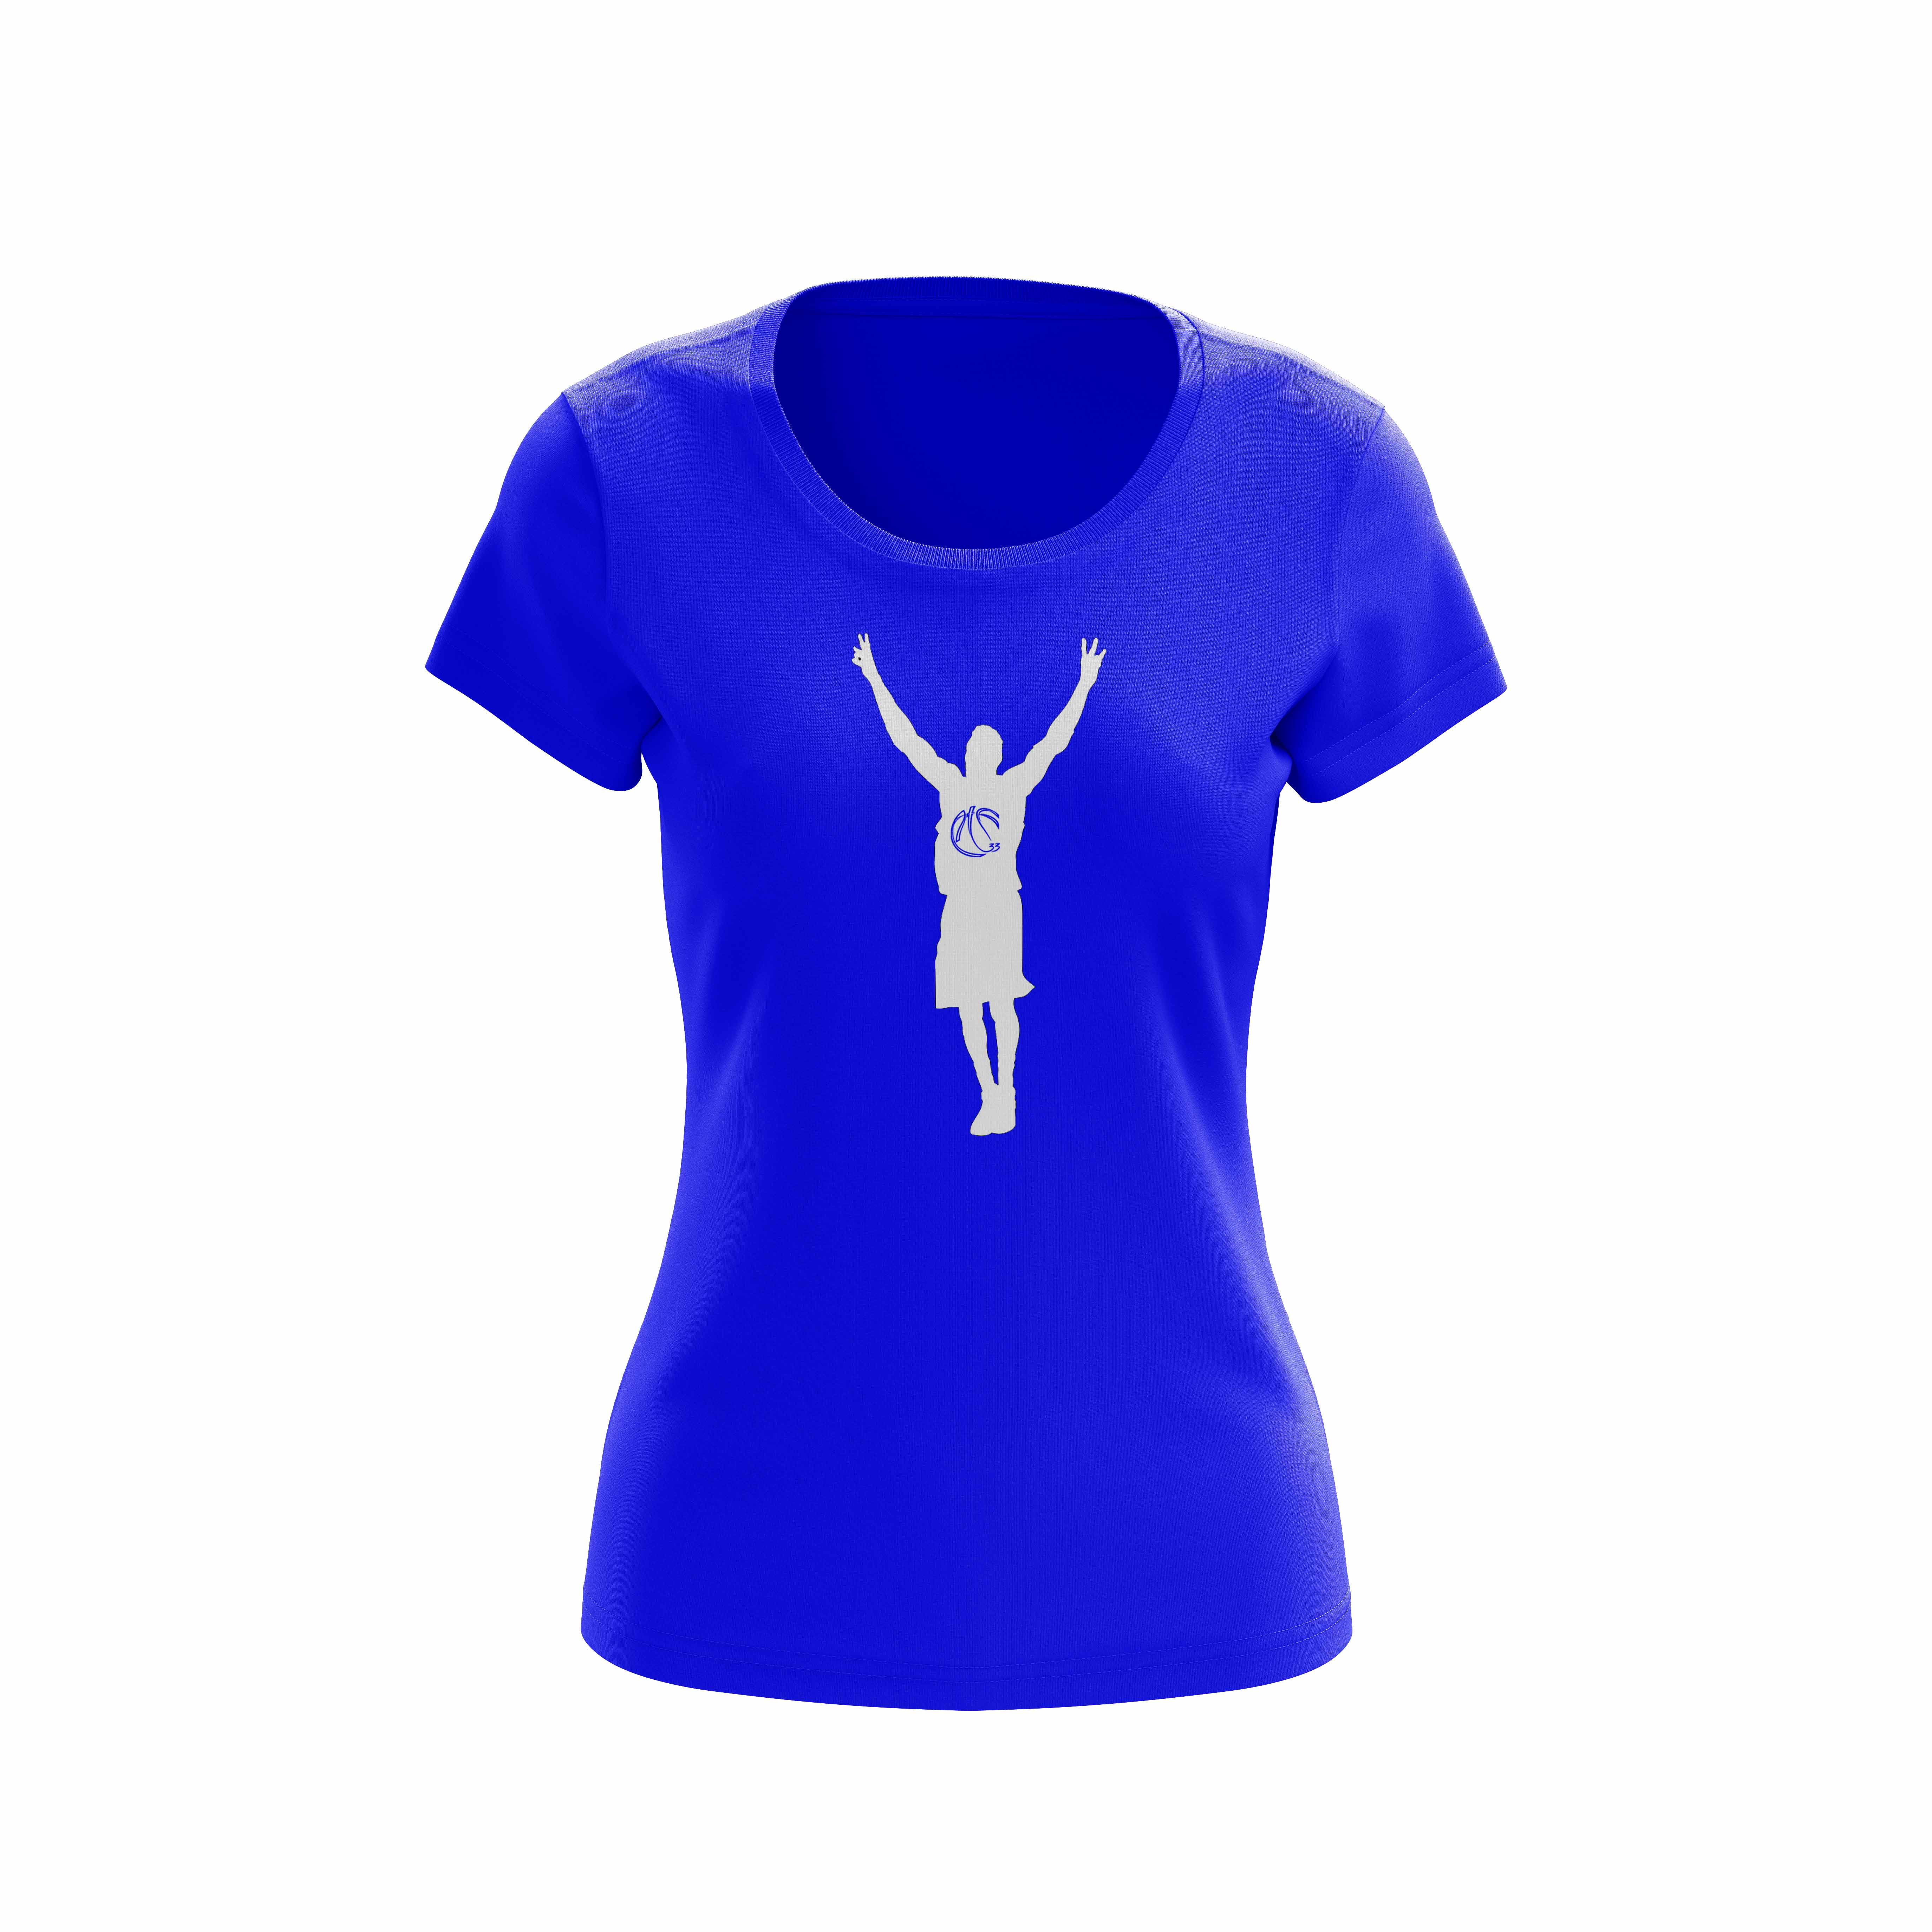 Robert-Covington-Ladies-Blue-Shirt